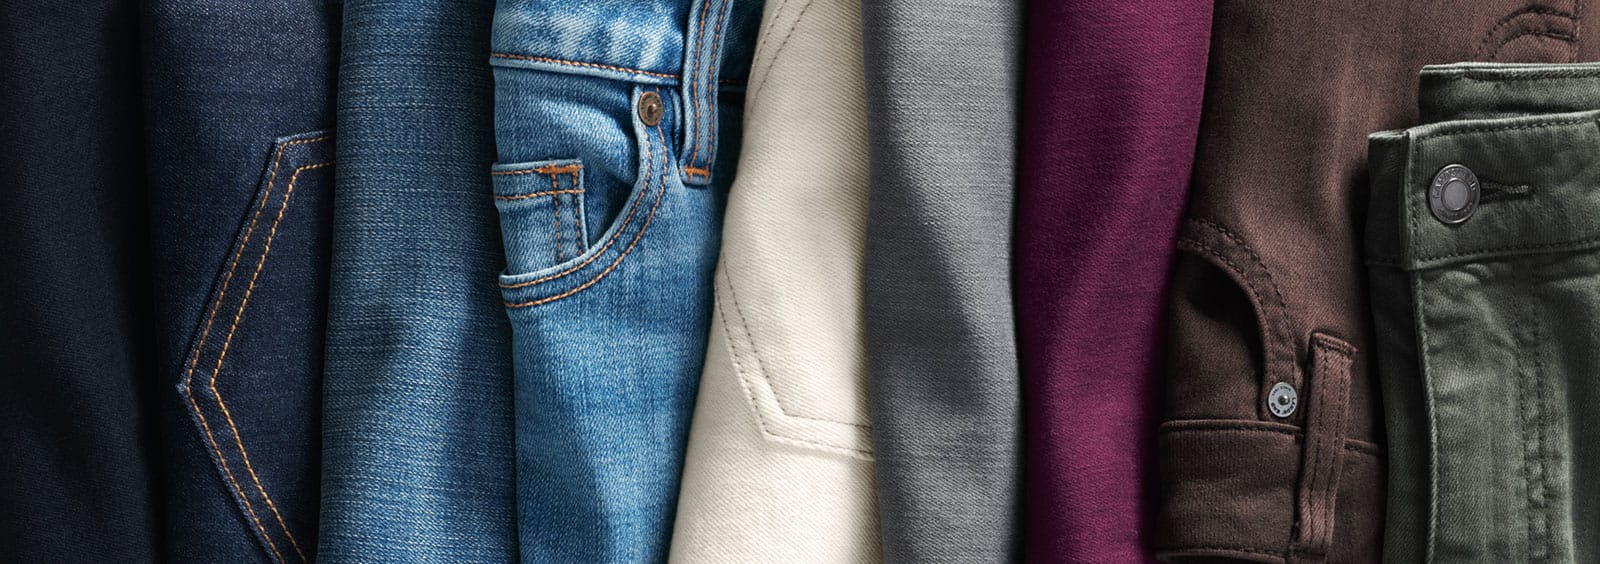 Which are the Warmest Jeans for Women?